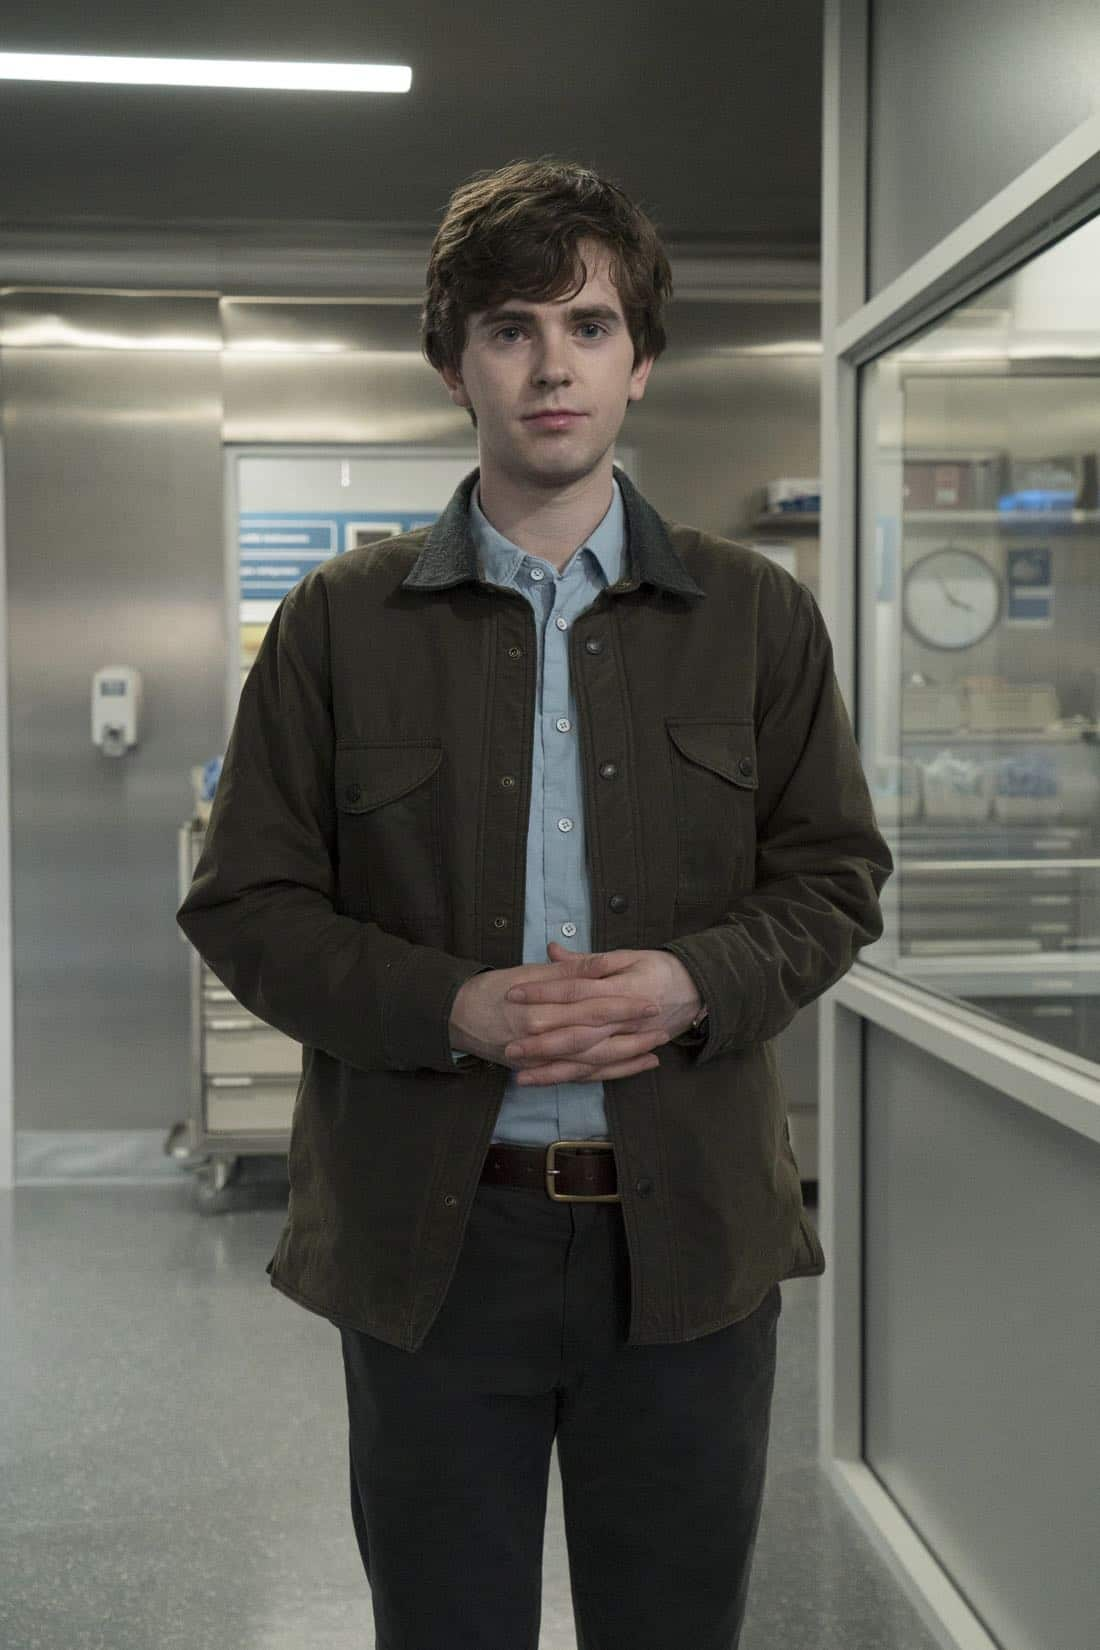 """THE GOOD DOCTOR - """"PILOT - Burnt Food"""" - Dr. Shaun Murphy (Freddie Highmore), a young surgeon with autism and savant syndrome, relocates from a quiet country life to join the prestigious St. Bonaventure hospital's surgical unit. Alone in the world and unable to personally connect with those around him, his only advocate, Dr. Aaron Glassman (Richard Schiff), challenges the skepticism and prejudices of the hospital's board and staff when he brings him in to join the team. Shaun will need to work harder than he ever has before, as he navigates his new environment and relationships to prove to his colleagues that his extraordinary medical gifts will save lives. The highly anticipated series premiere of """"The Good Doctor"""" airs MONDAY, SEPTEMBER 25 (10:01-11:00 p.m. EDT), on The ABC Television Network. (ABC/Liane Hentscher)"""